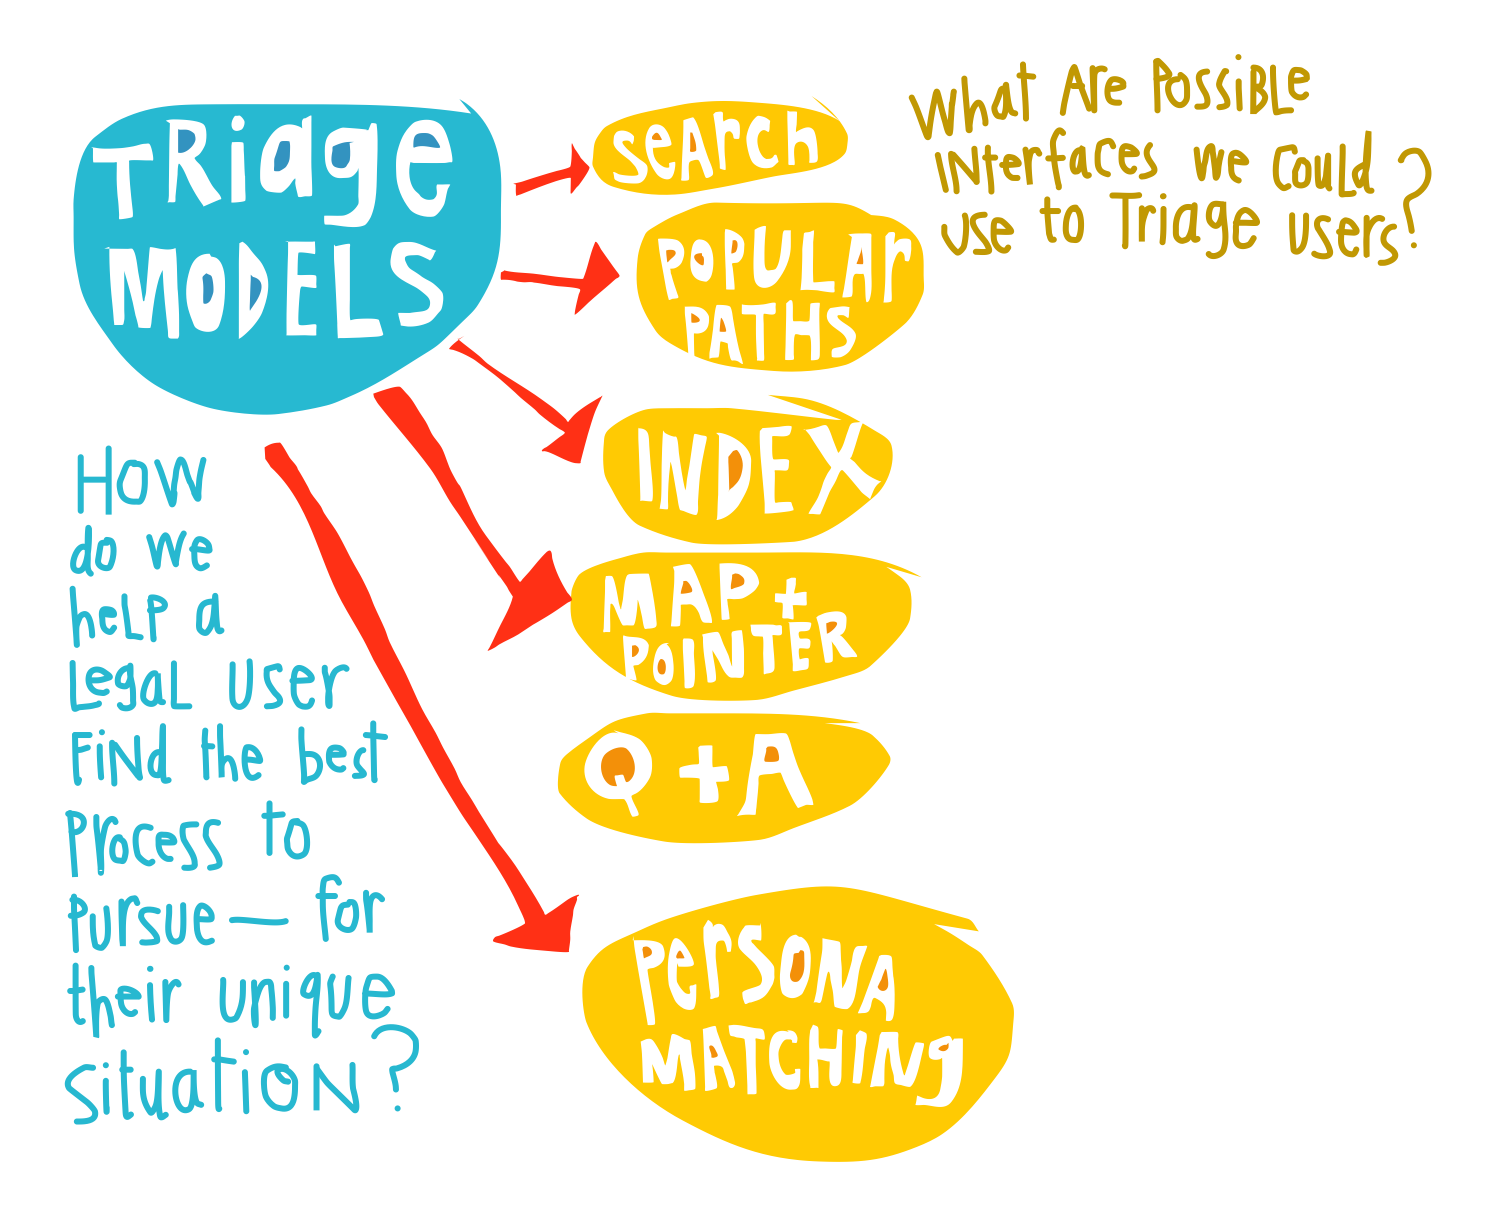 Triage Models - Margaret Hagan sketch - legal navigators